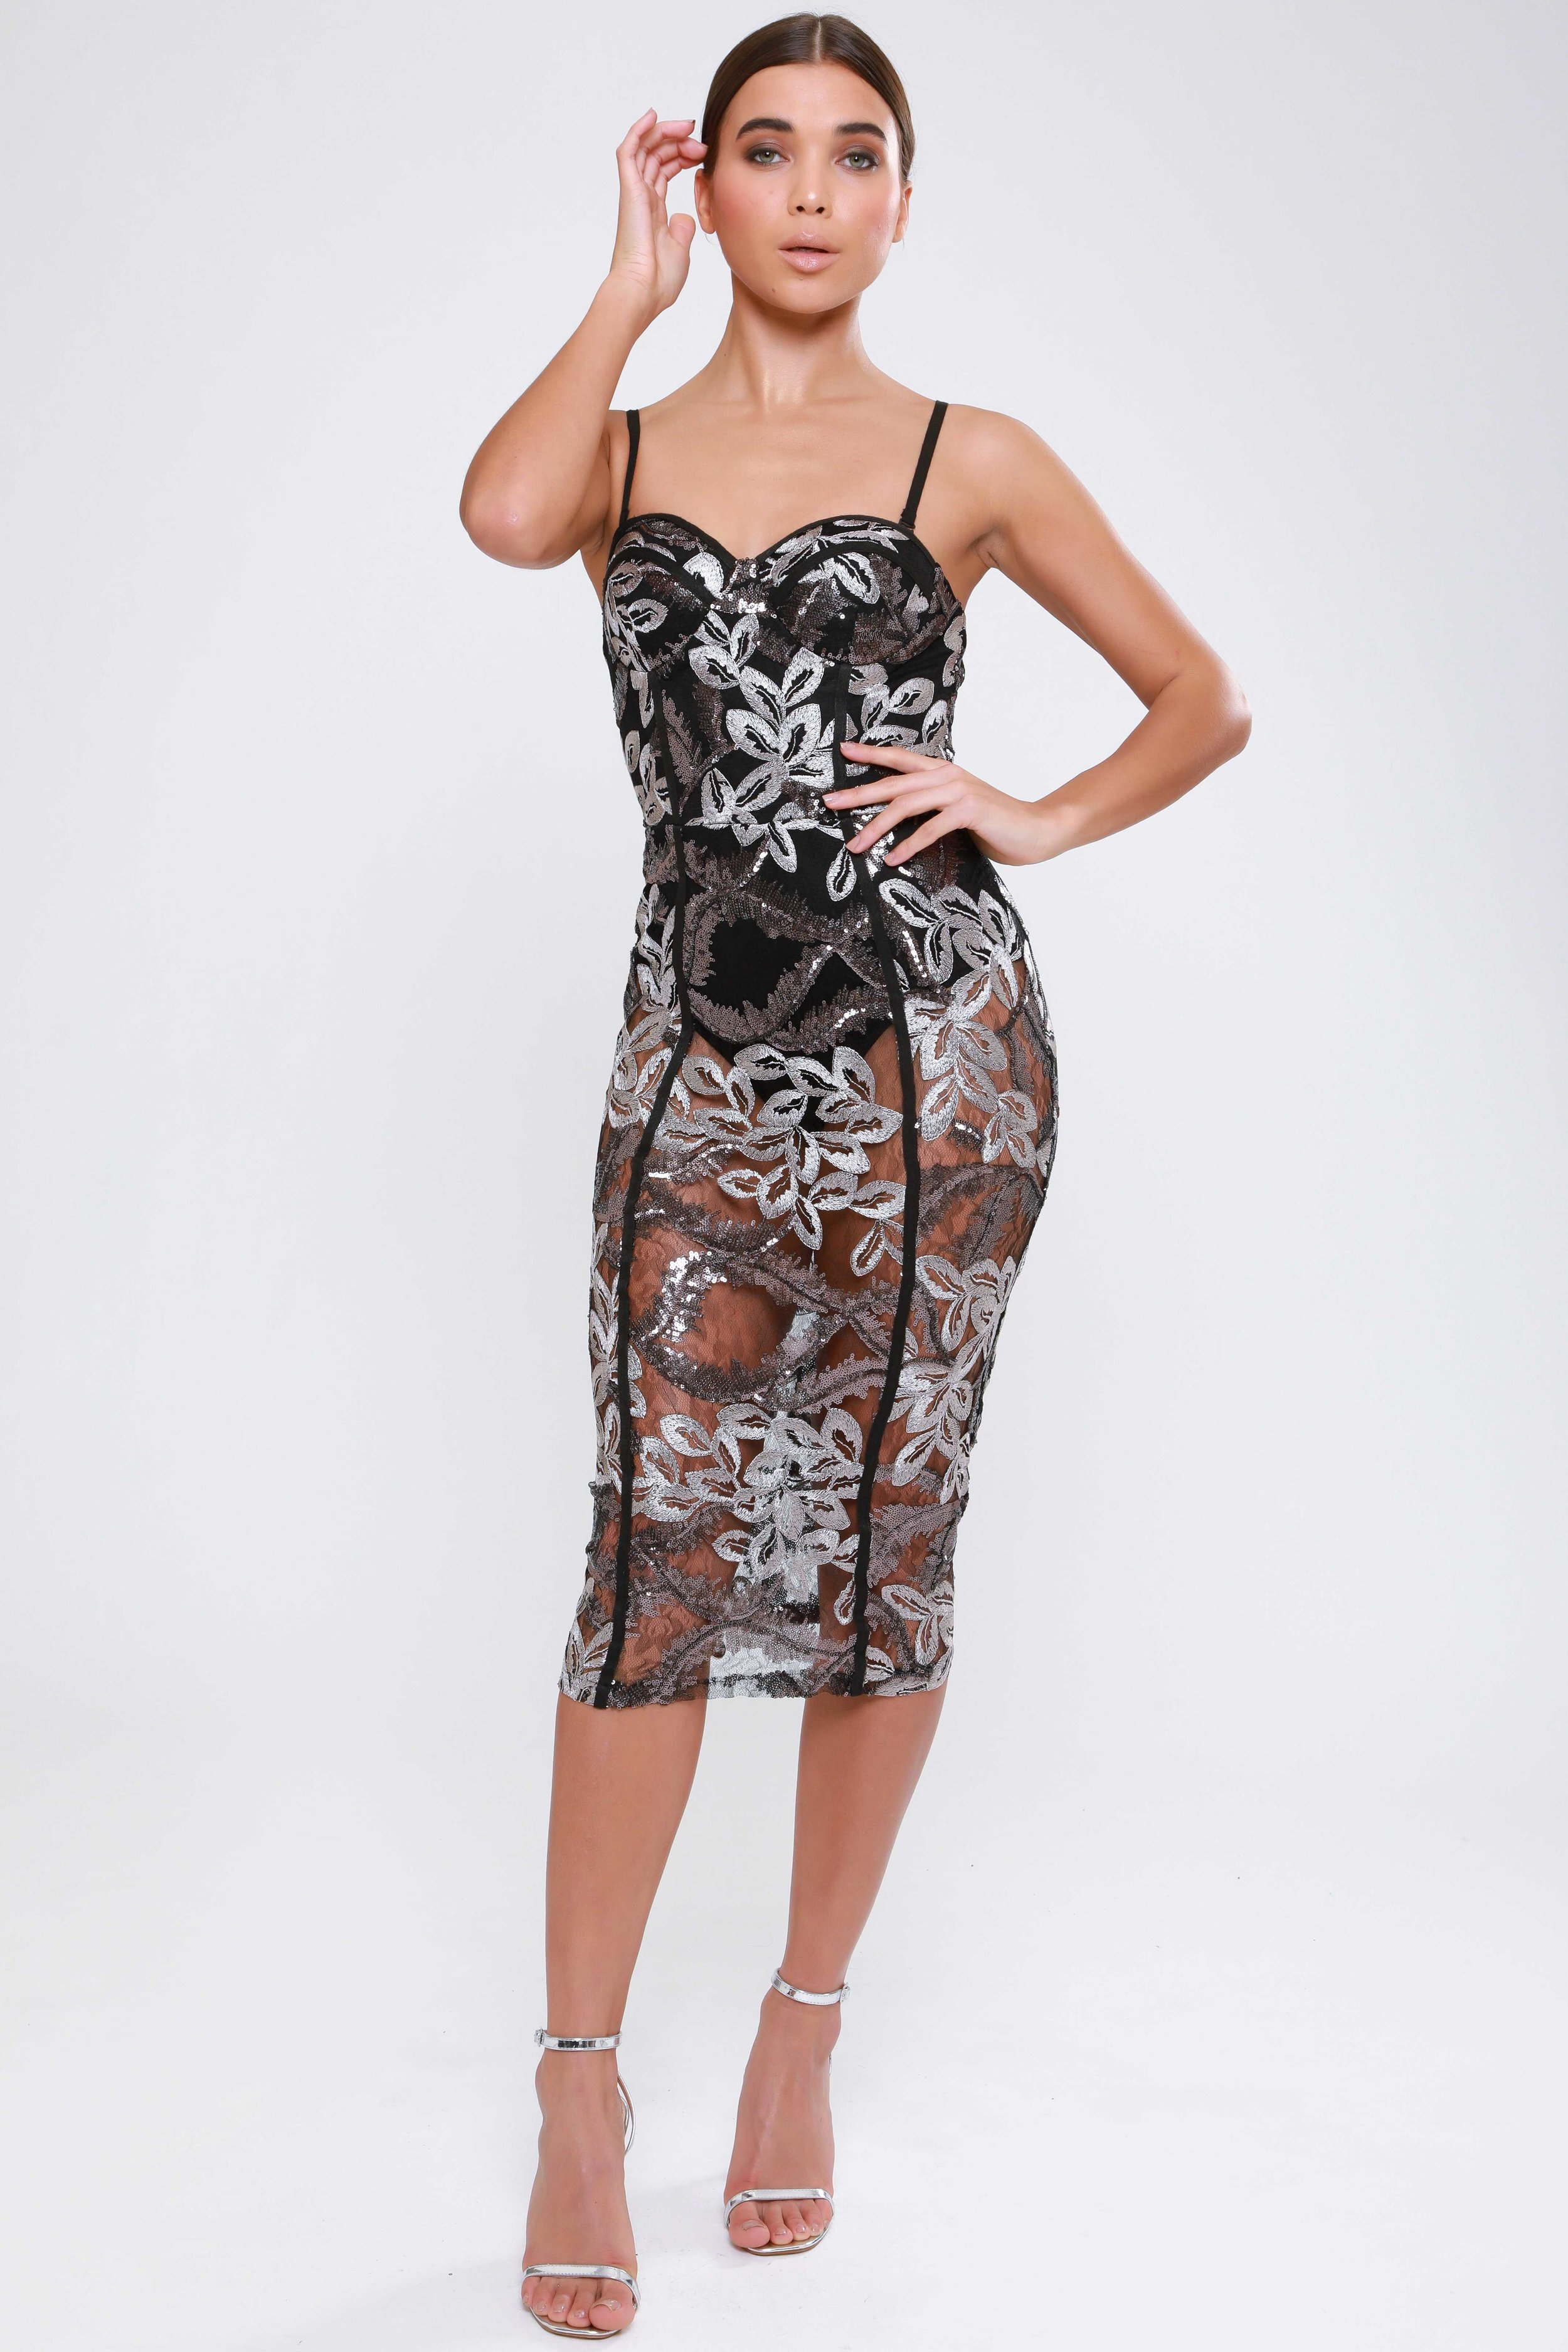 Embroidered Sequin Mesh  Midi Dress   £75.00